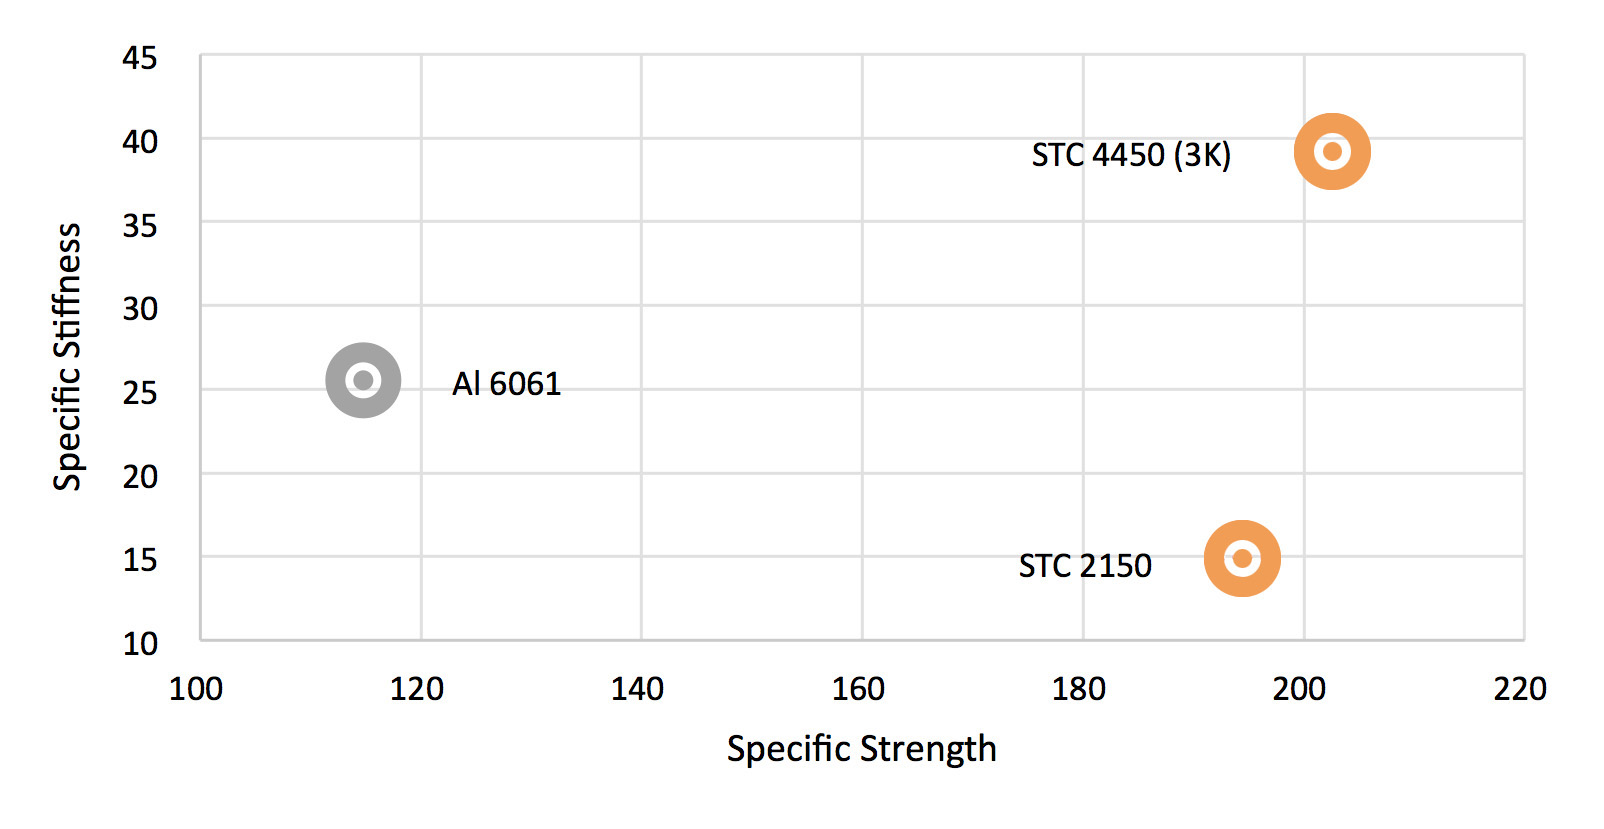 STC Products Compared To Standard Metals